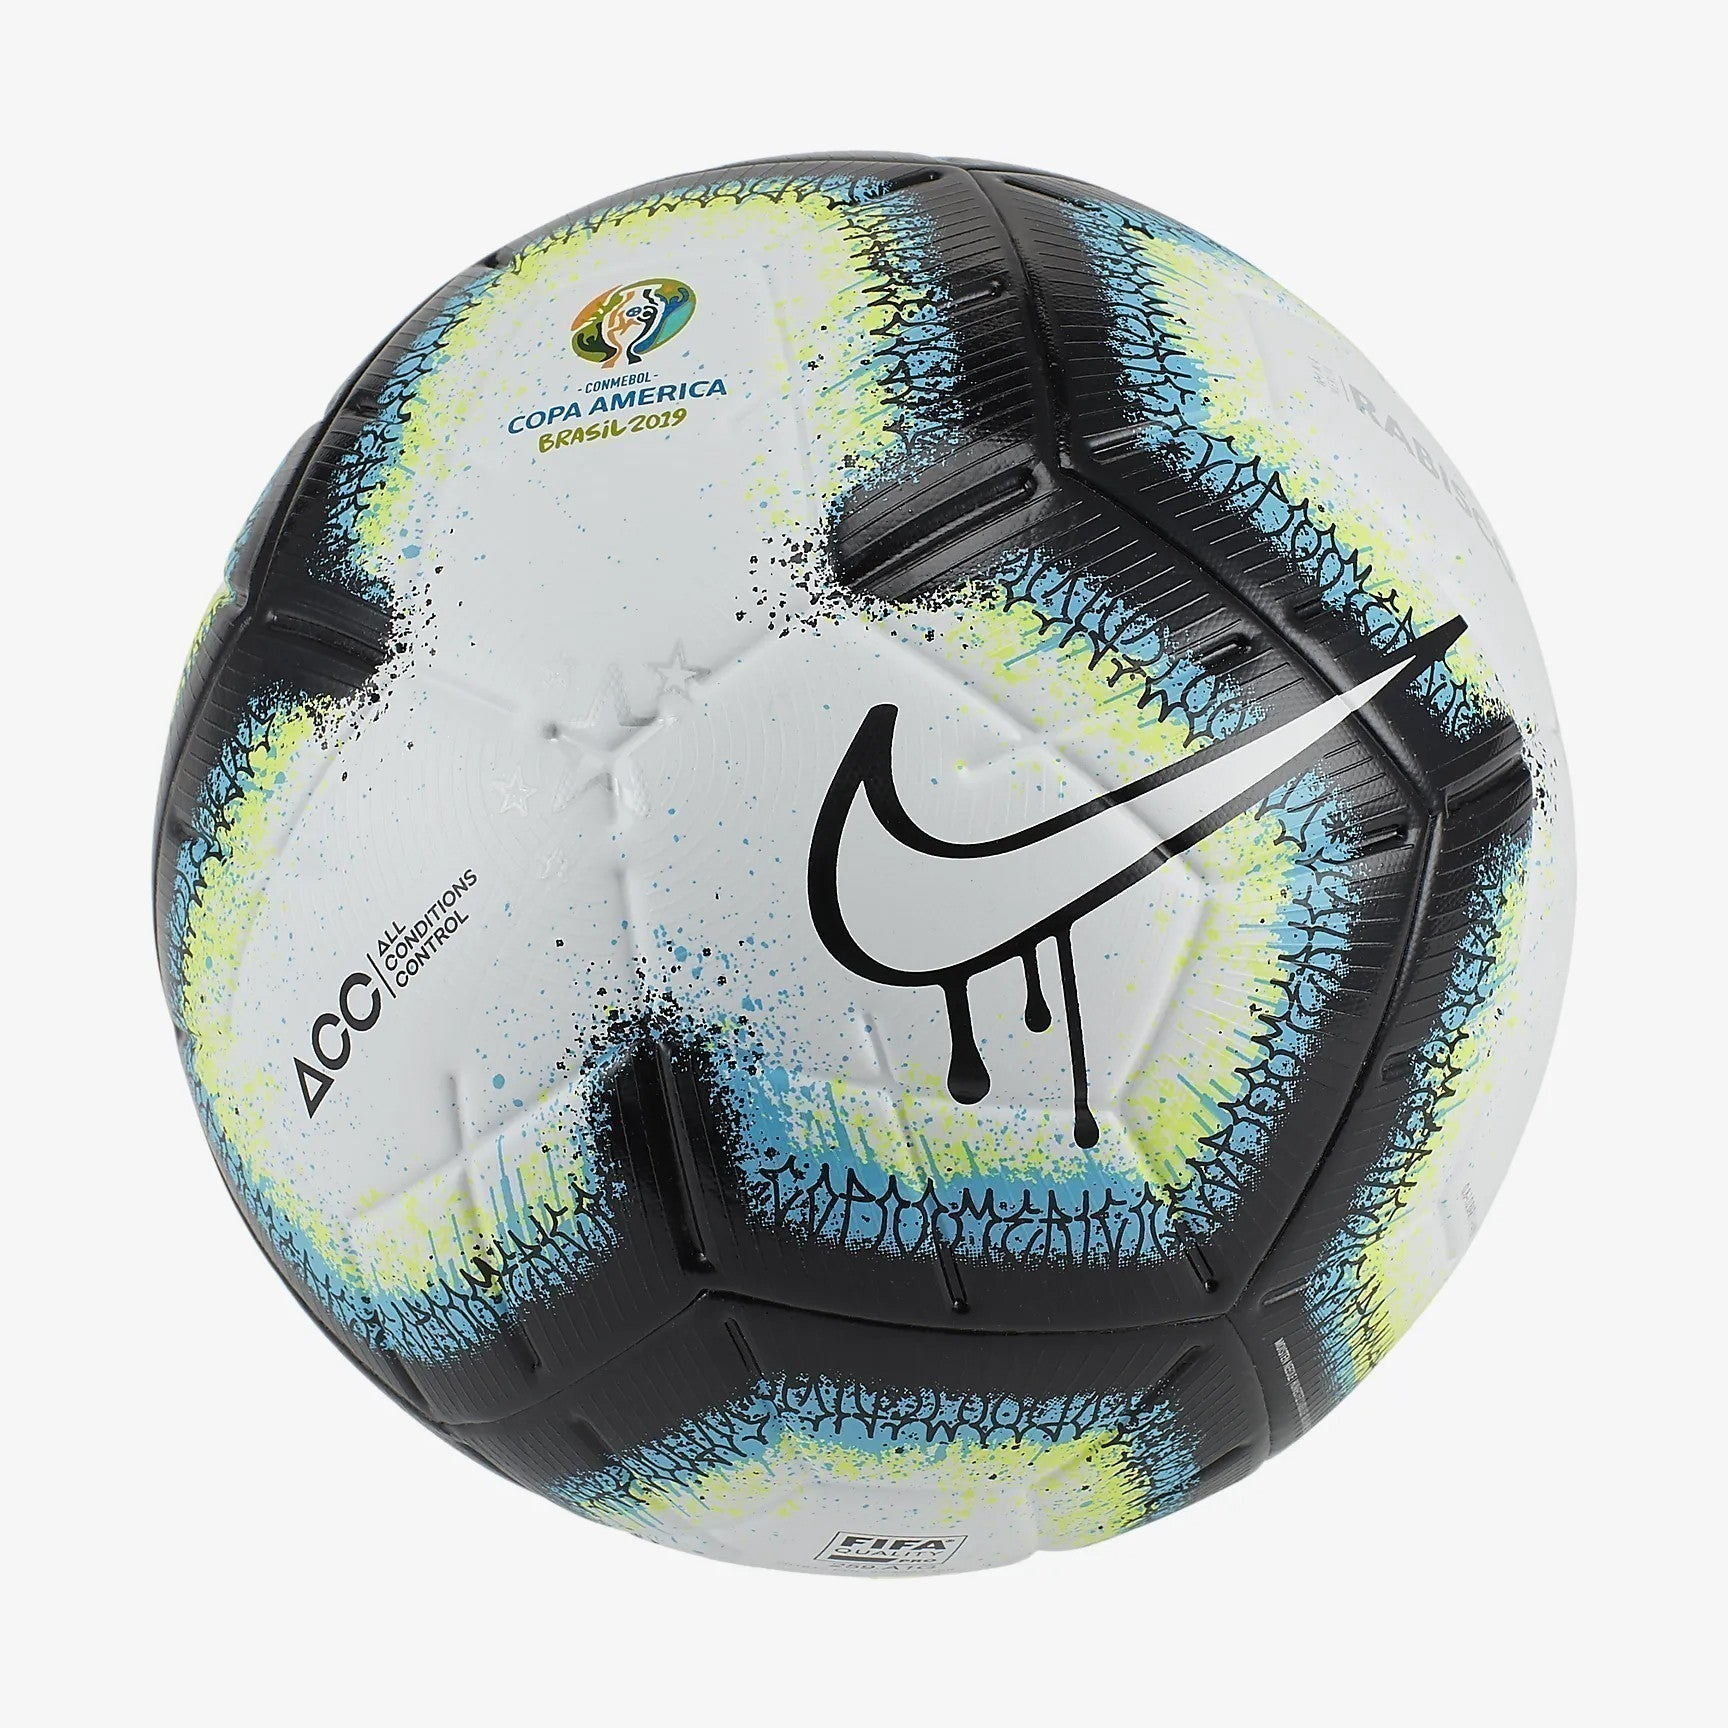 Merlin Rabisco Copa America 2019 Soccer Ball  - White/Black/Blue/White